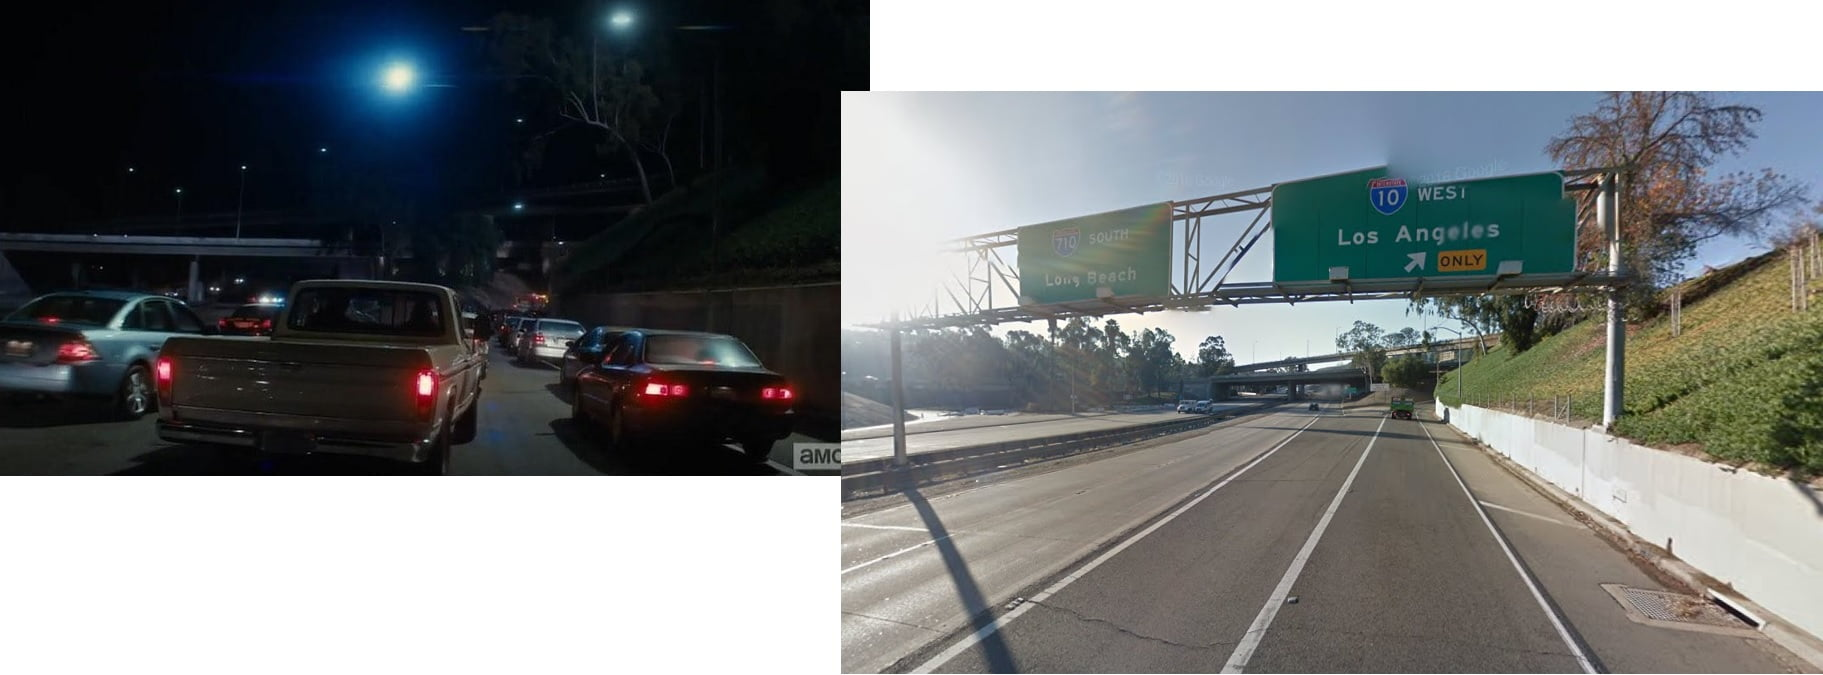 Fear-the-Walking-filming-locations-los-angeles-season1-710-and-hwy10-pic2